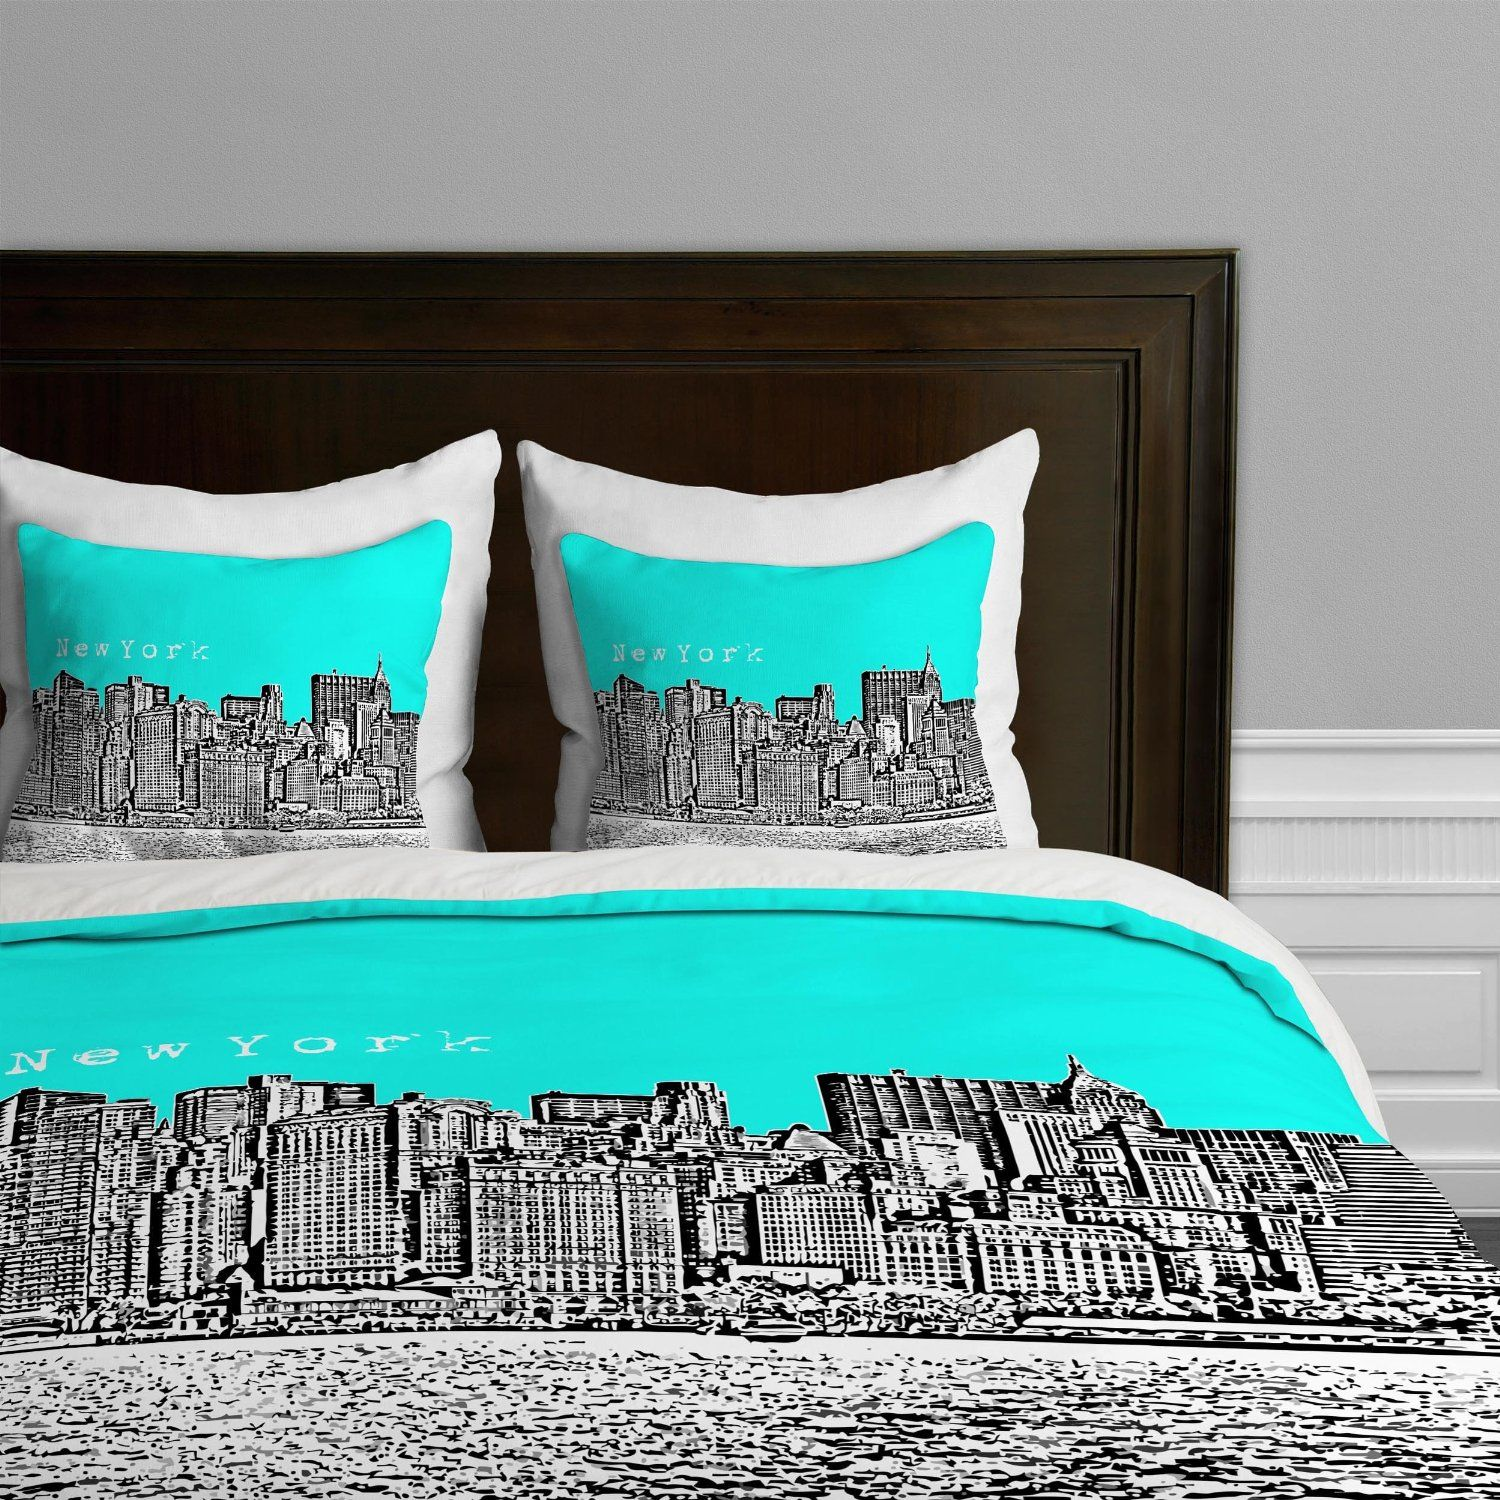 New York Accessories For Bedroom Total Fab New York City Skyline Bedding Nyc Themed Bedroom